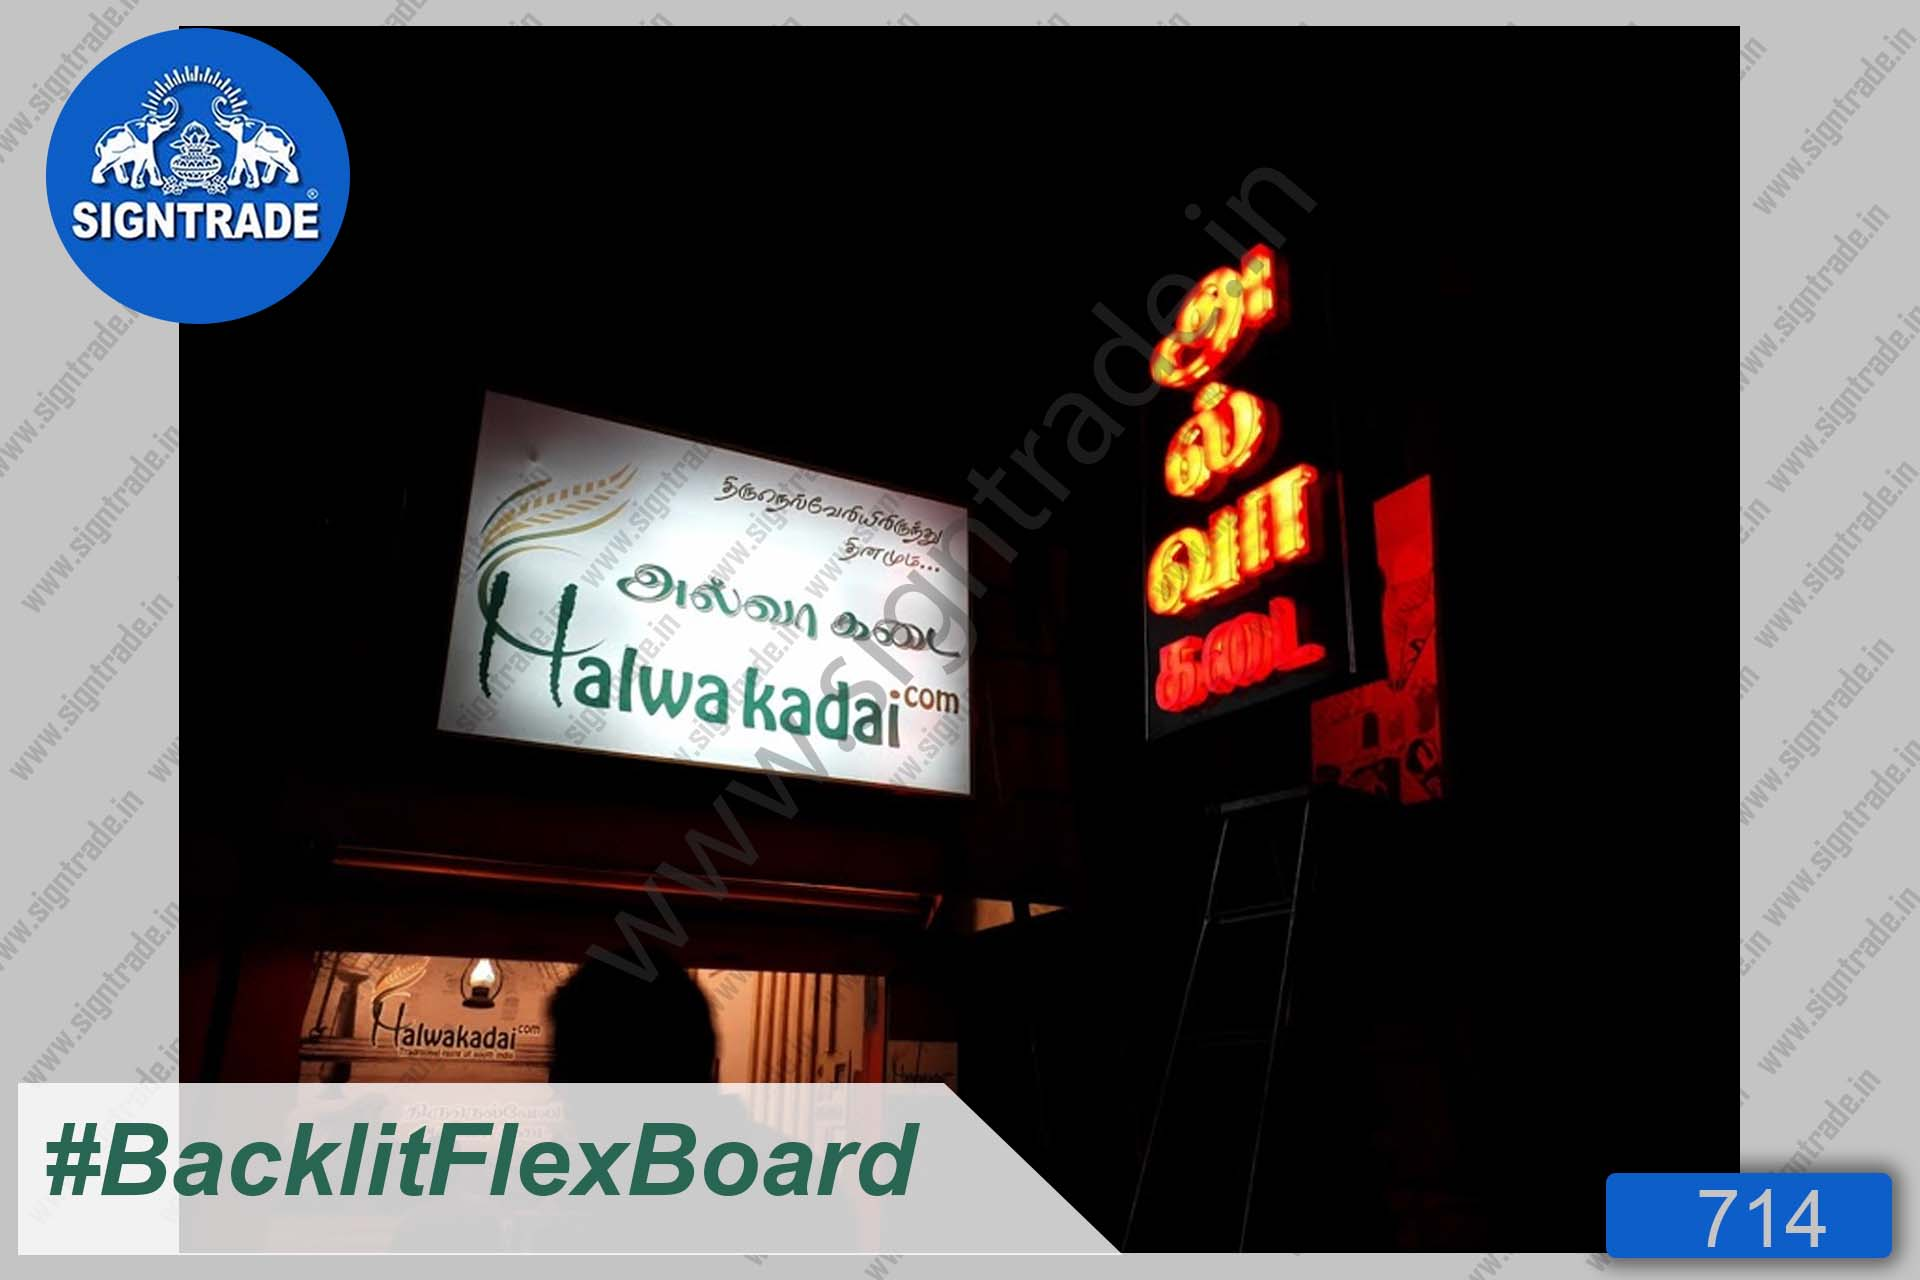 Halwakadai - Backlit Flex Board